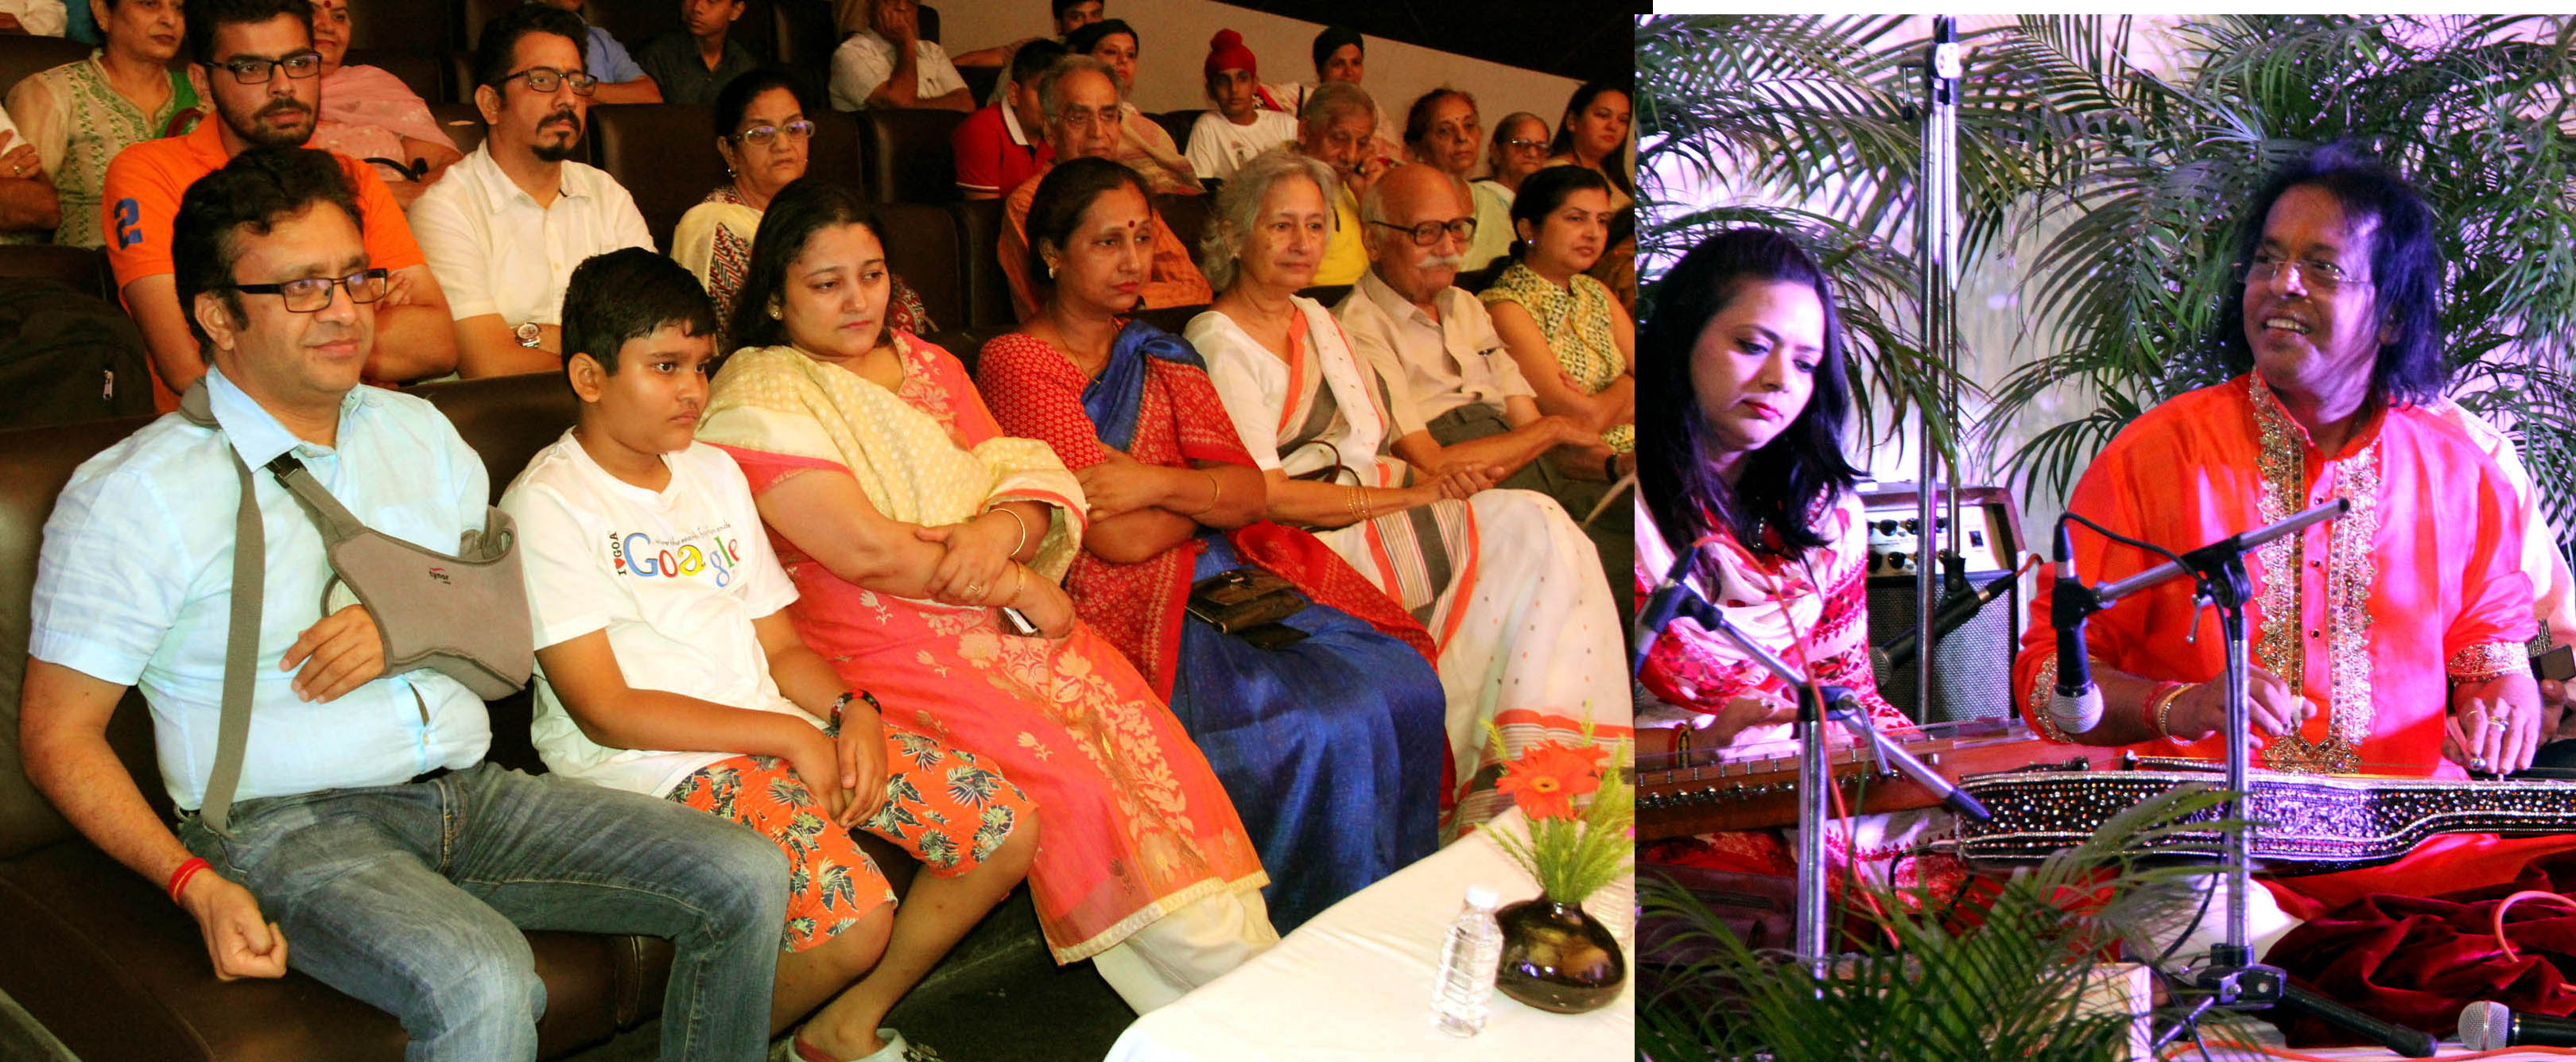 UT Home Secretary, Shri Anurag Agarwal alongwith  with family witnessing the Swar Raagini Instrumental by Pt. Subhash Ghosh at Govt. Museum& Art Gallery Sector 10 Chandigarh on Tuseday July 26,2016.